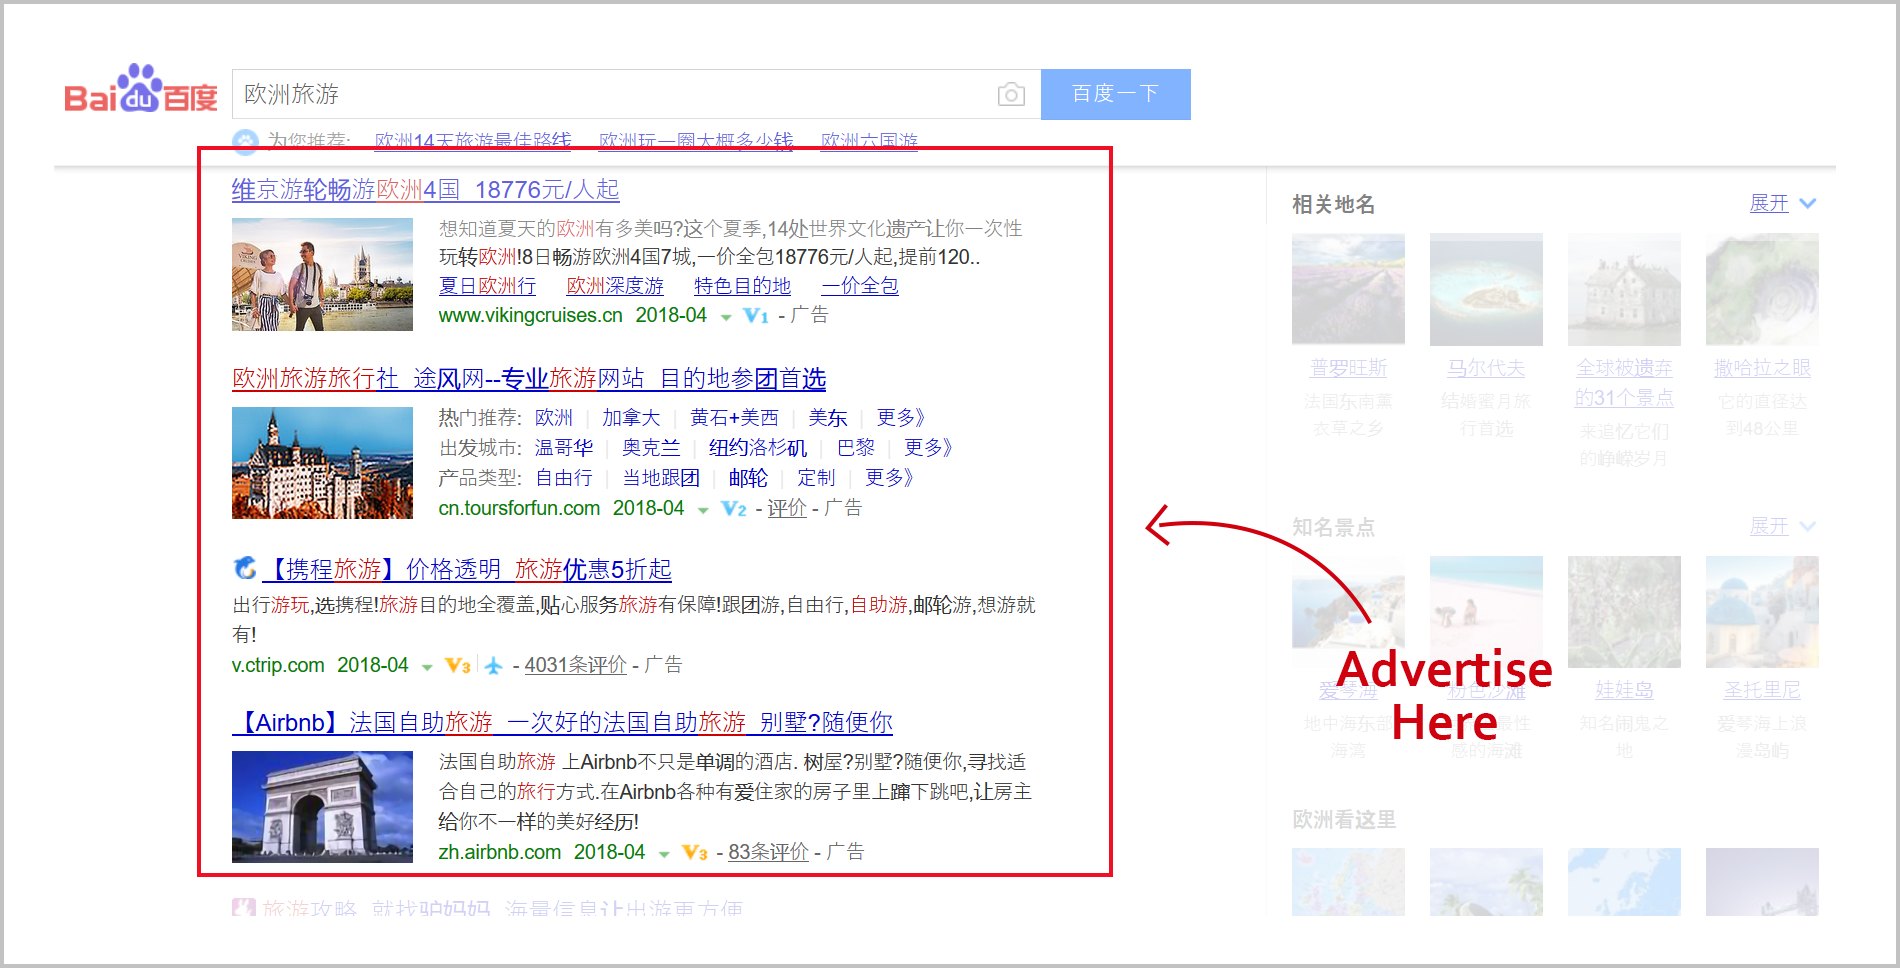 Advertise on Baidu